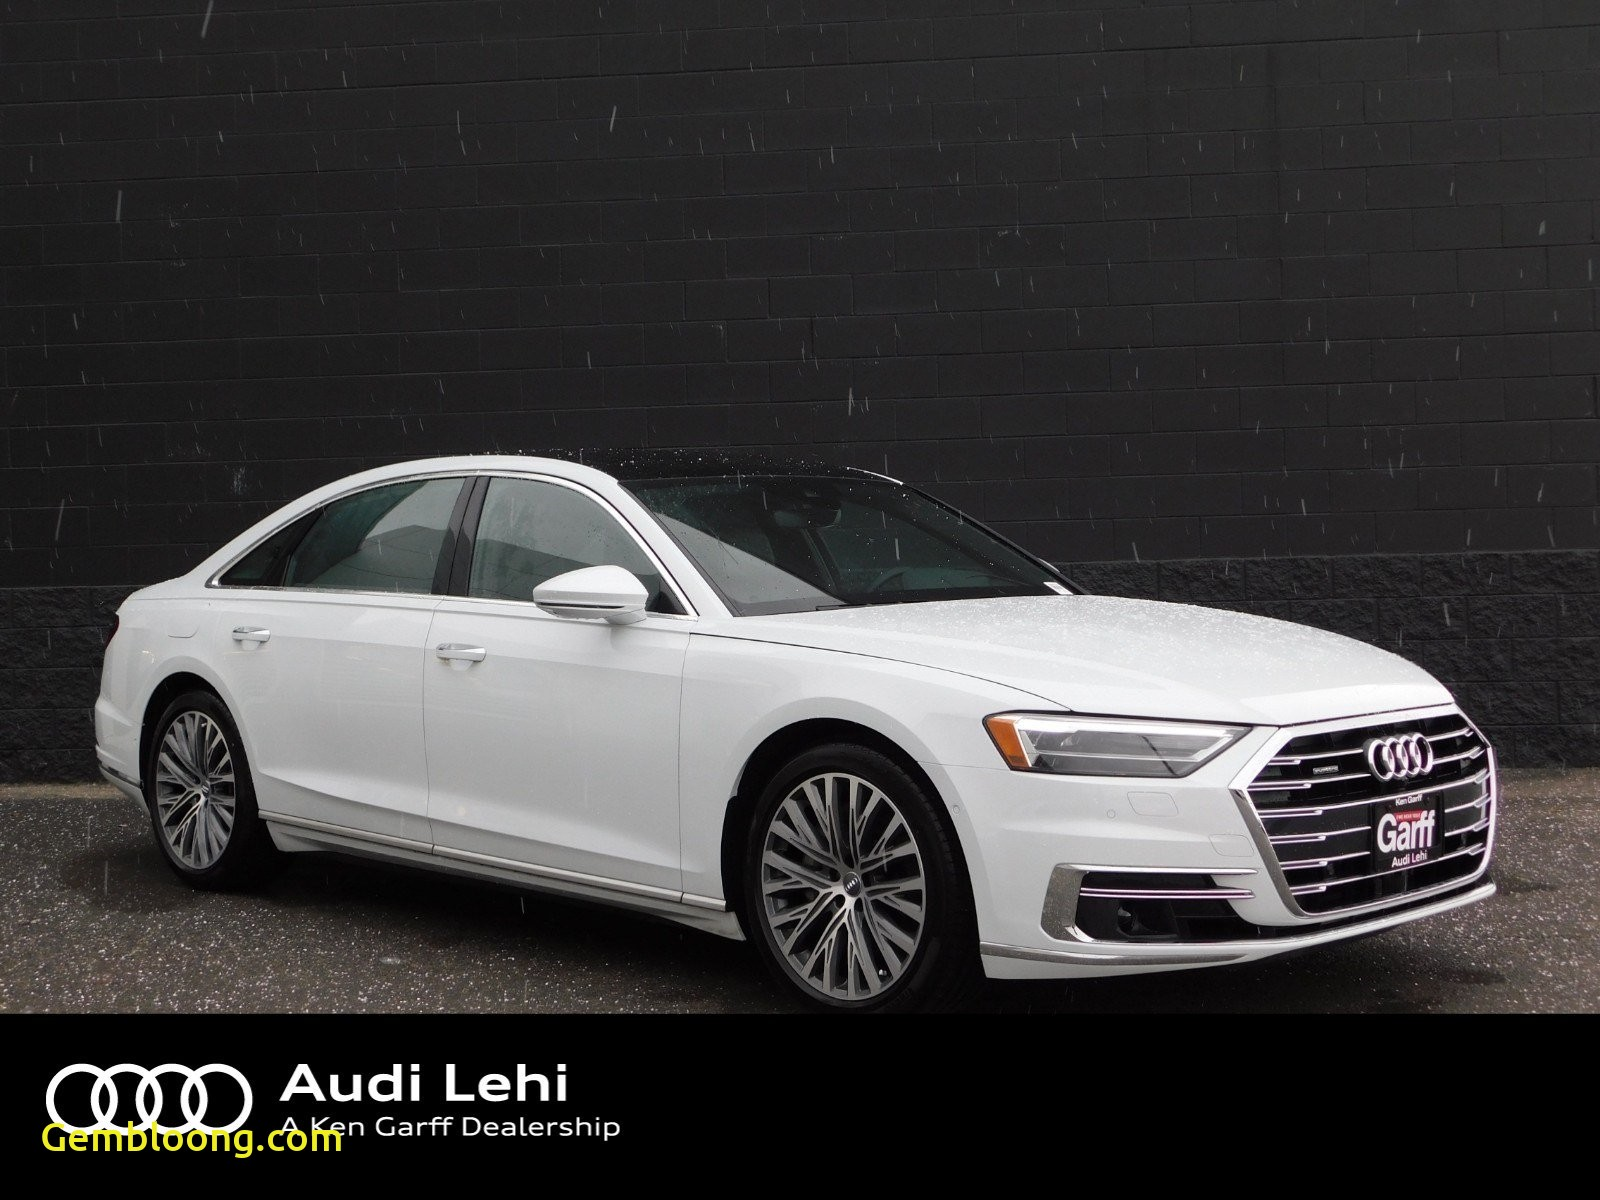 Cars for Sale Near Me Audi Awesome New Audi A8 L L 55 with Navigation & Awd